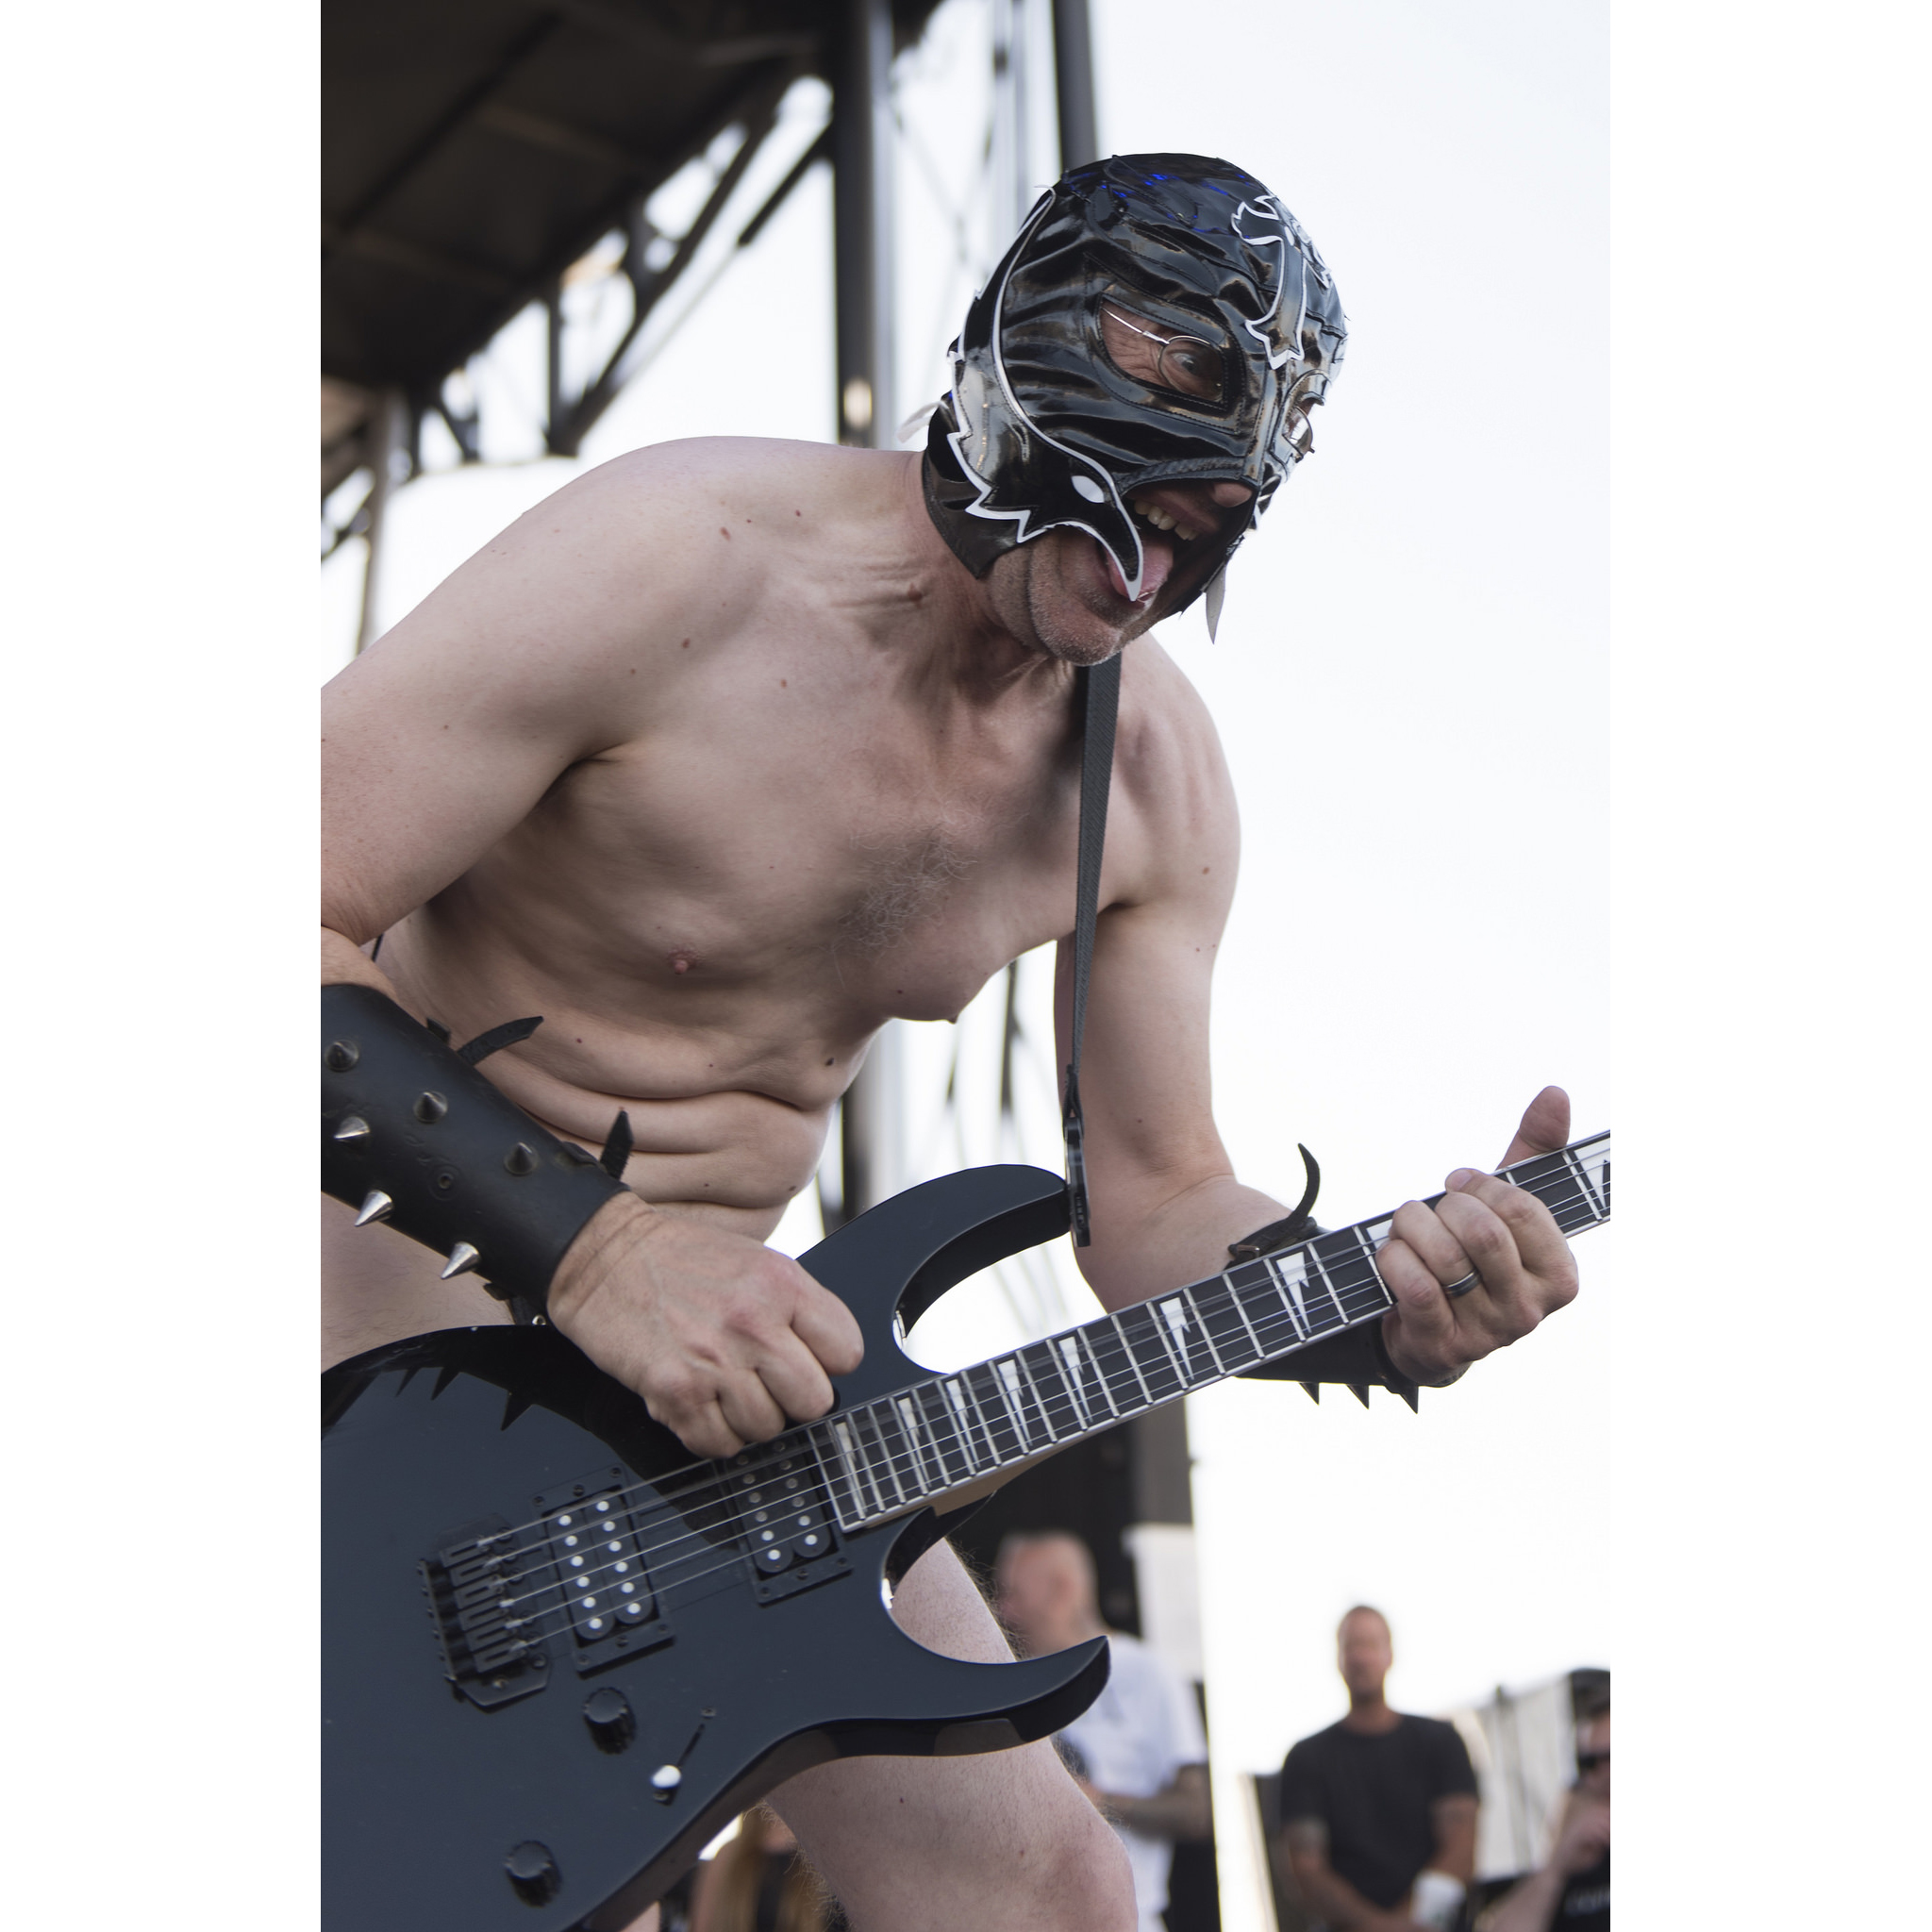 HeWhoCannotBeNamed performs with the Dwarves during the 18th annual Punk Rock Bowling & Music Festival in downtown Las Vegas Sunday, May 29, 2016.